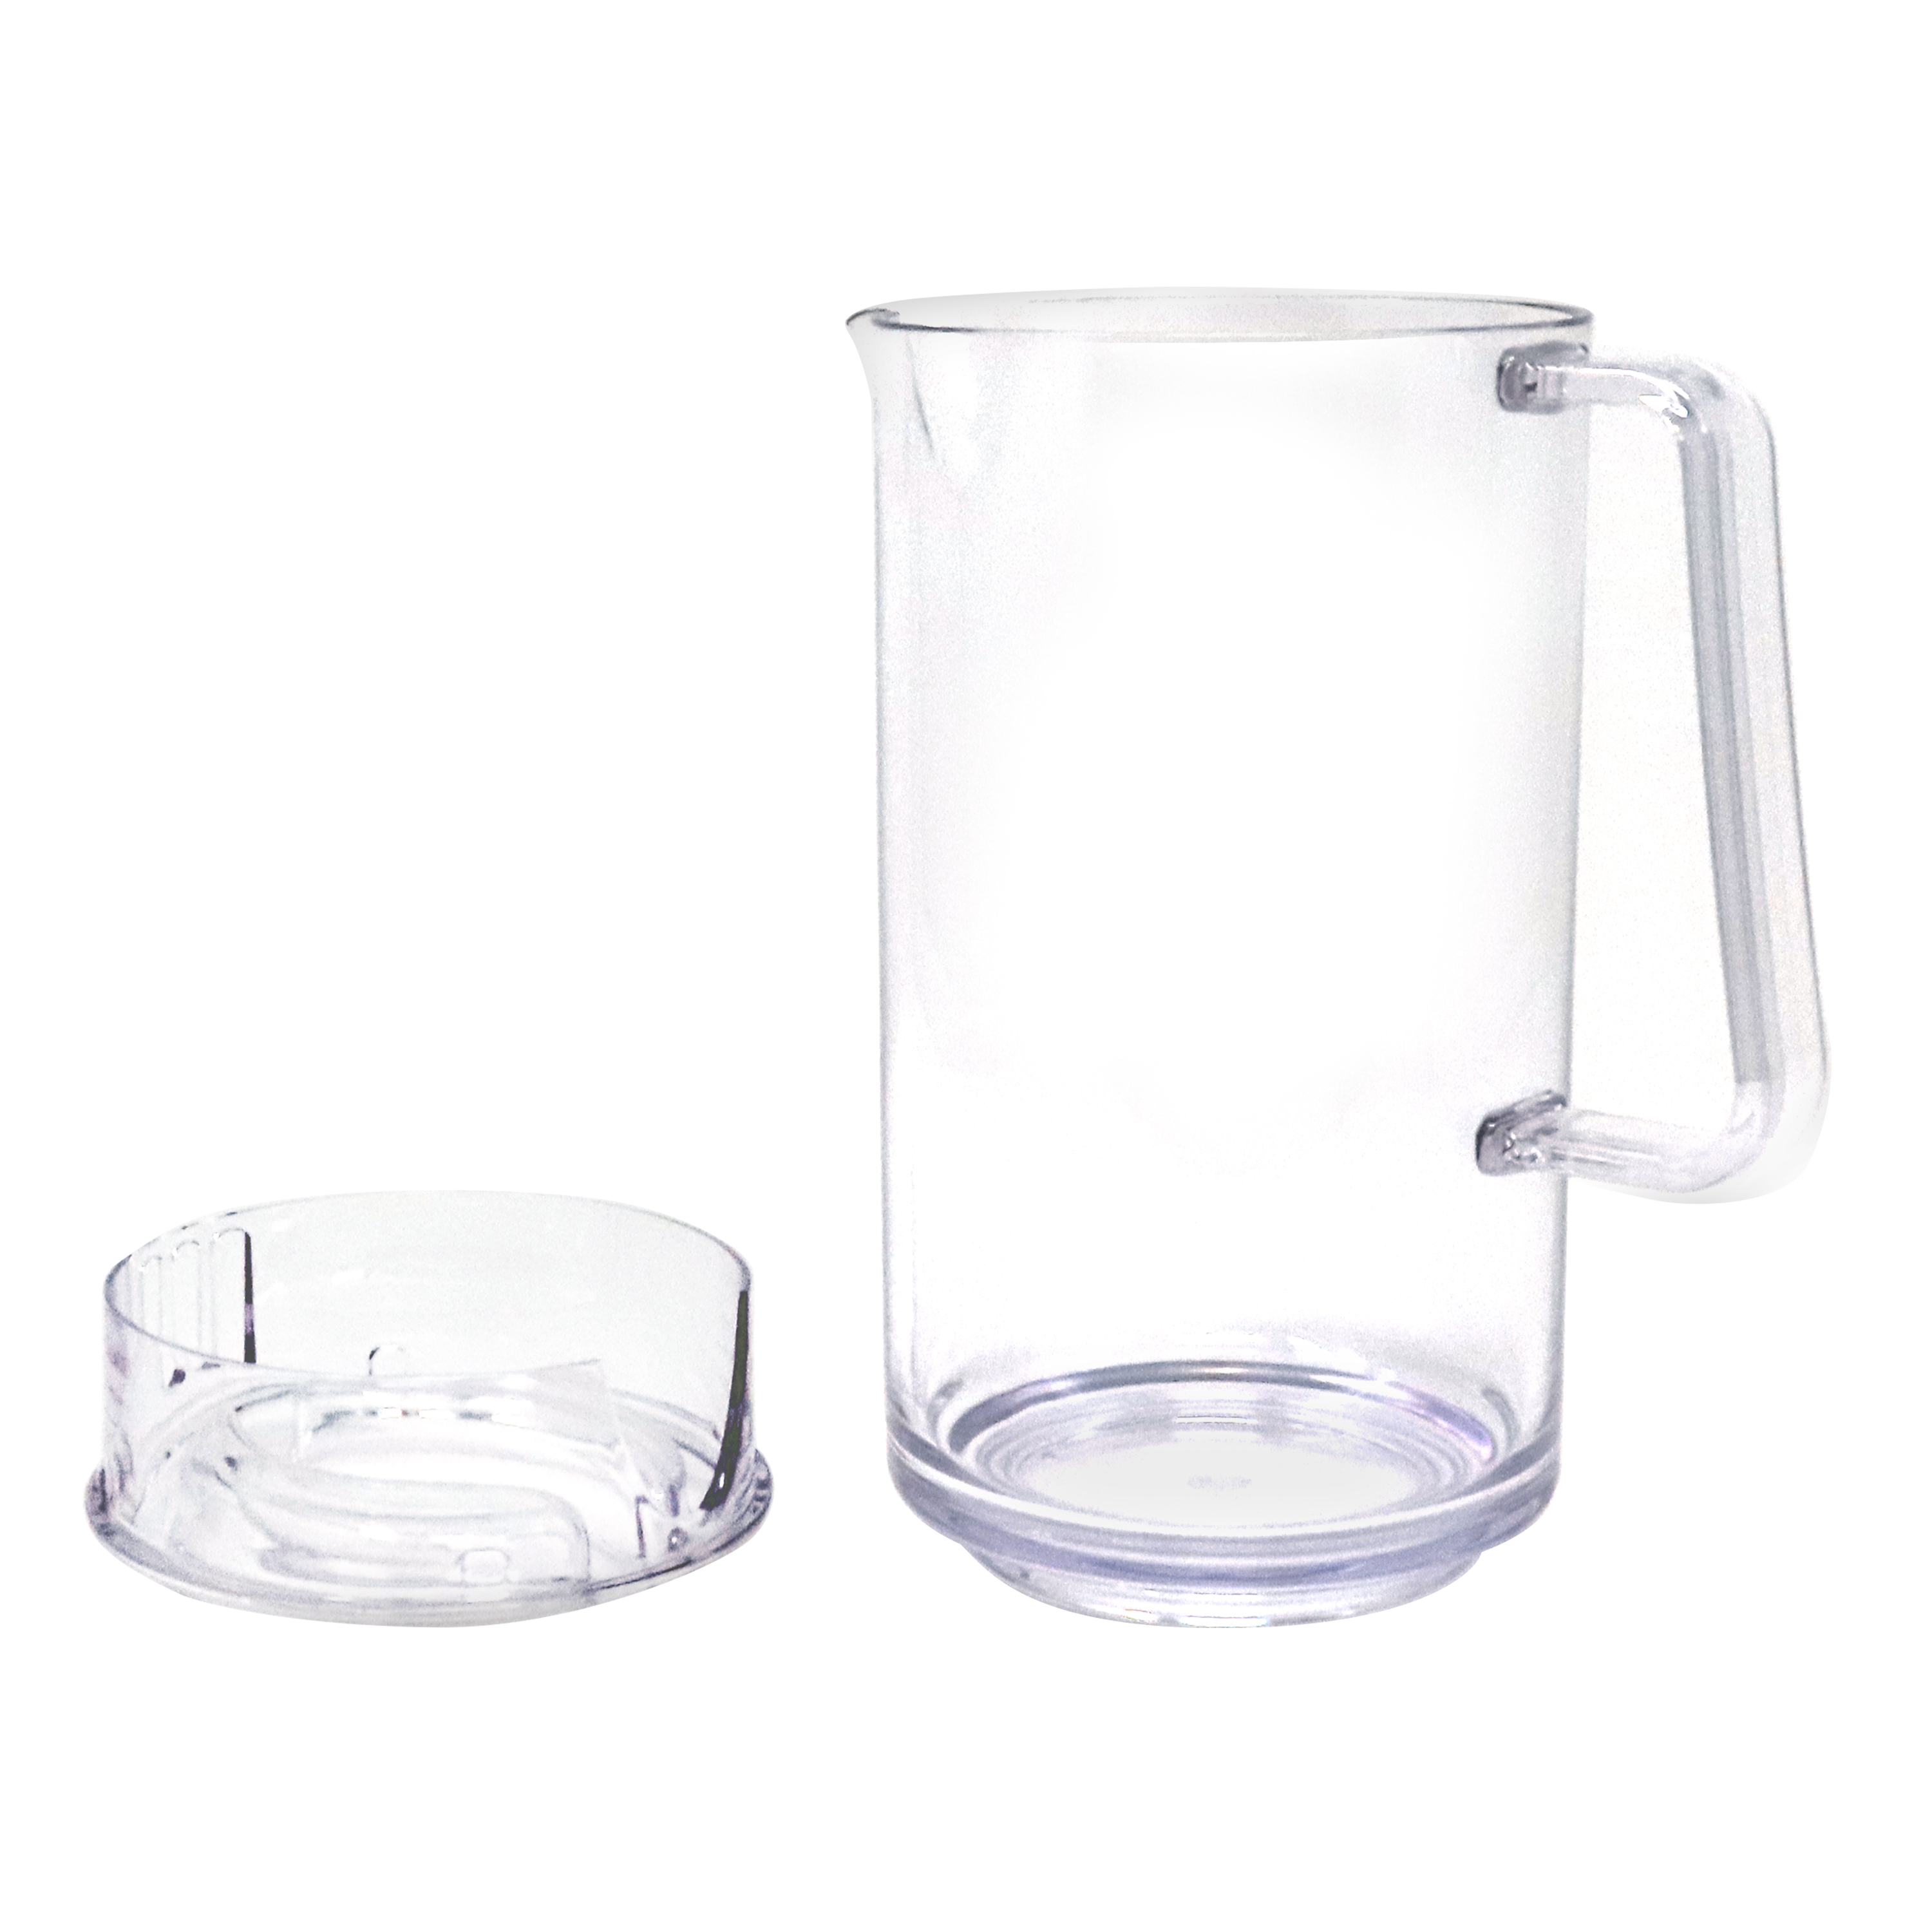 Zak Tabletime 2 quart Water Pitcher, Clear slideshow image 5